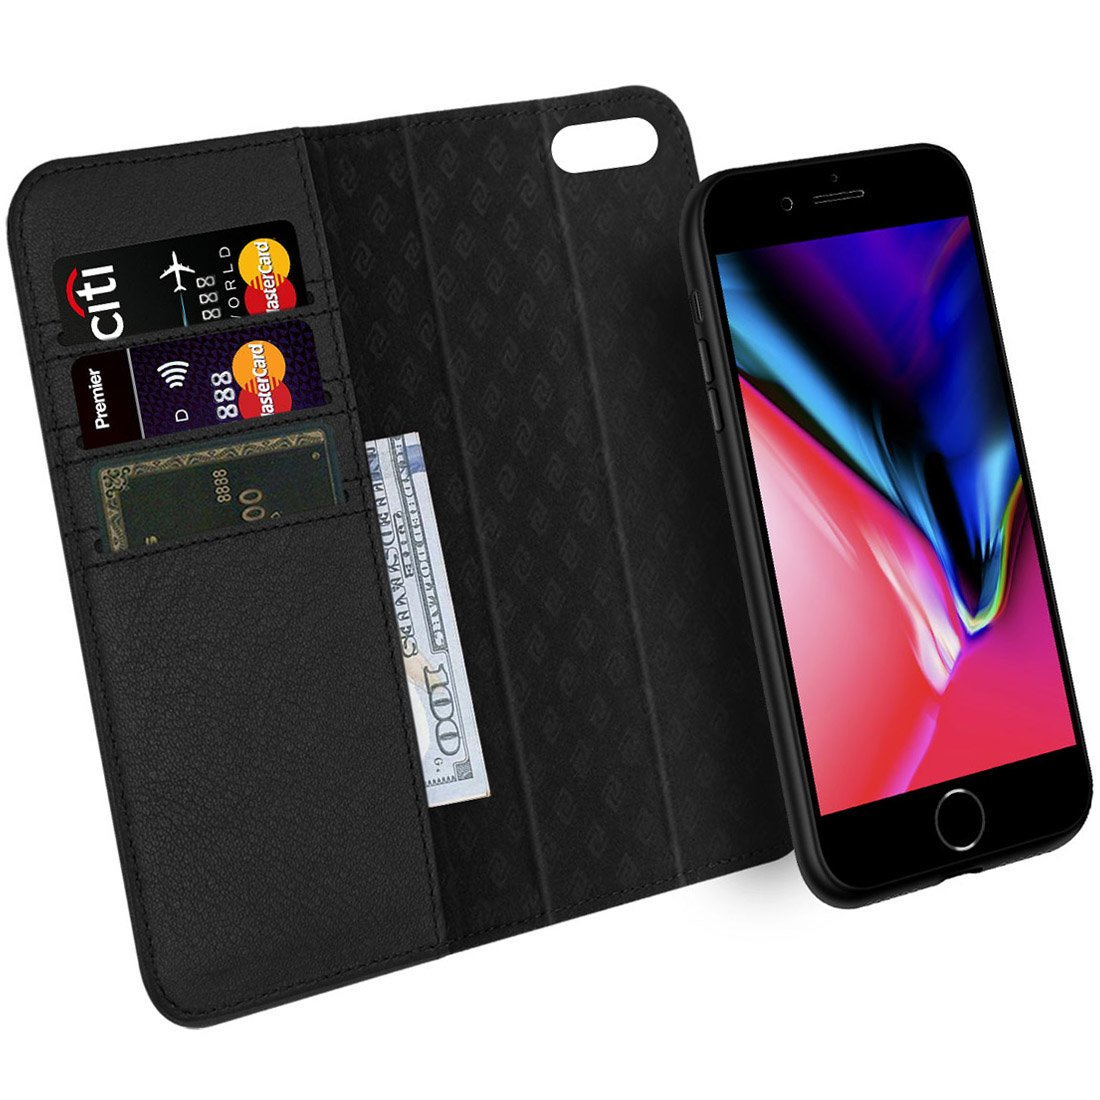 [Updated] ZOVER iPhone 8 Plus 7 Plus 6 Plus Detachable Wallet Case Genuine Leather Luxury Series RFID Blocking Magnetic Clasps Support Car Mount Kickstand Feature Card Bison Fone Slots Gift Box Black